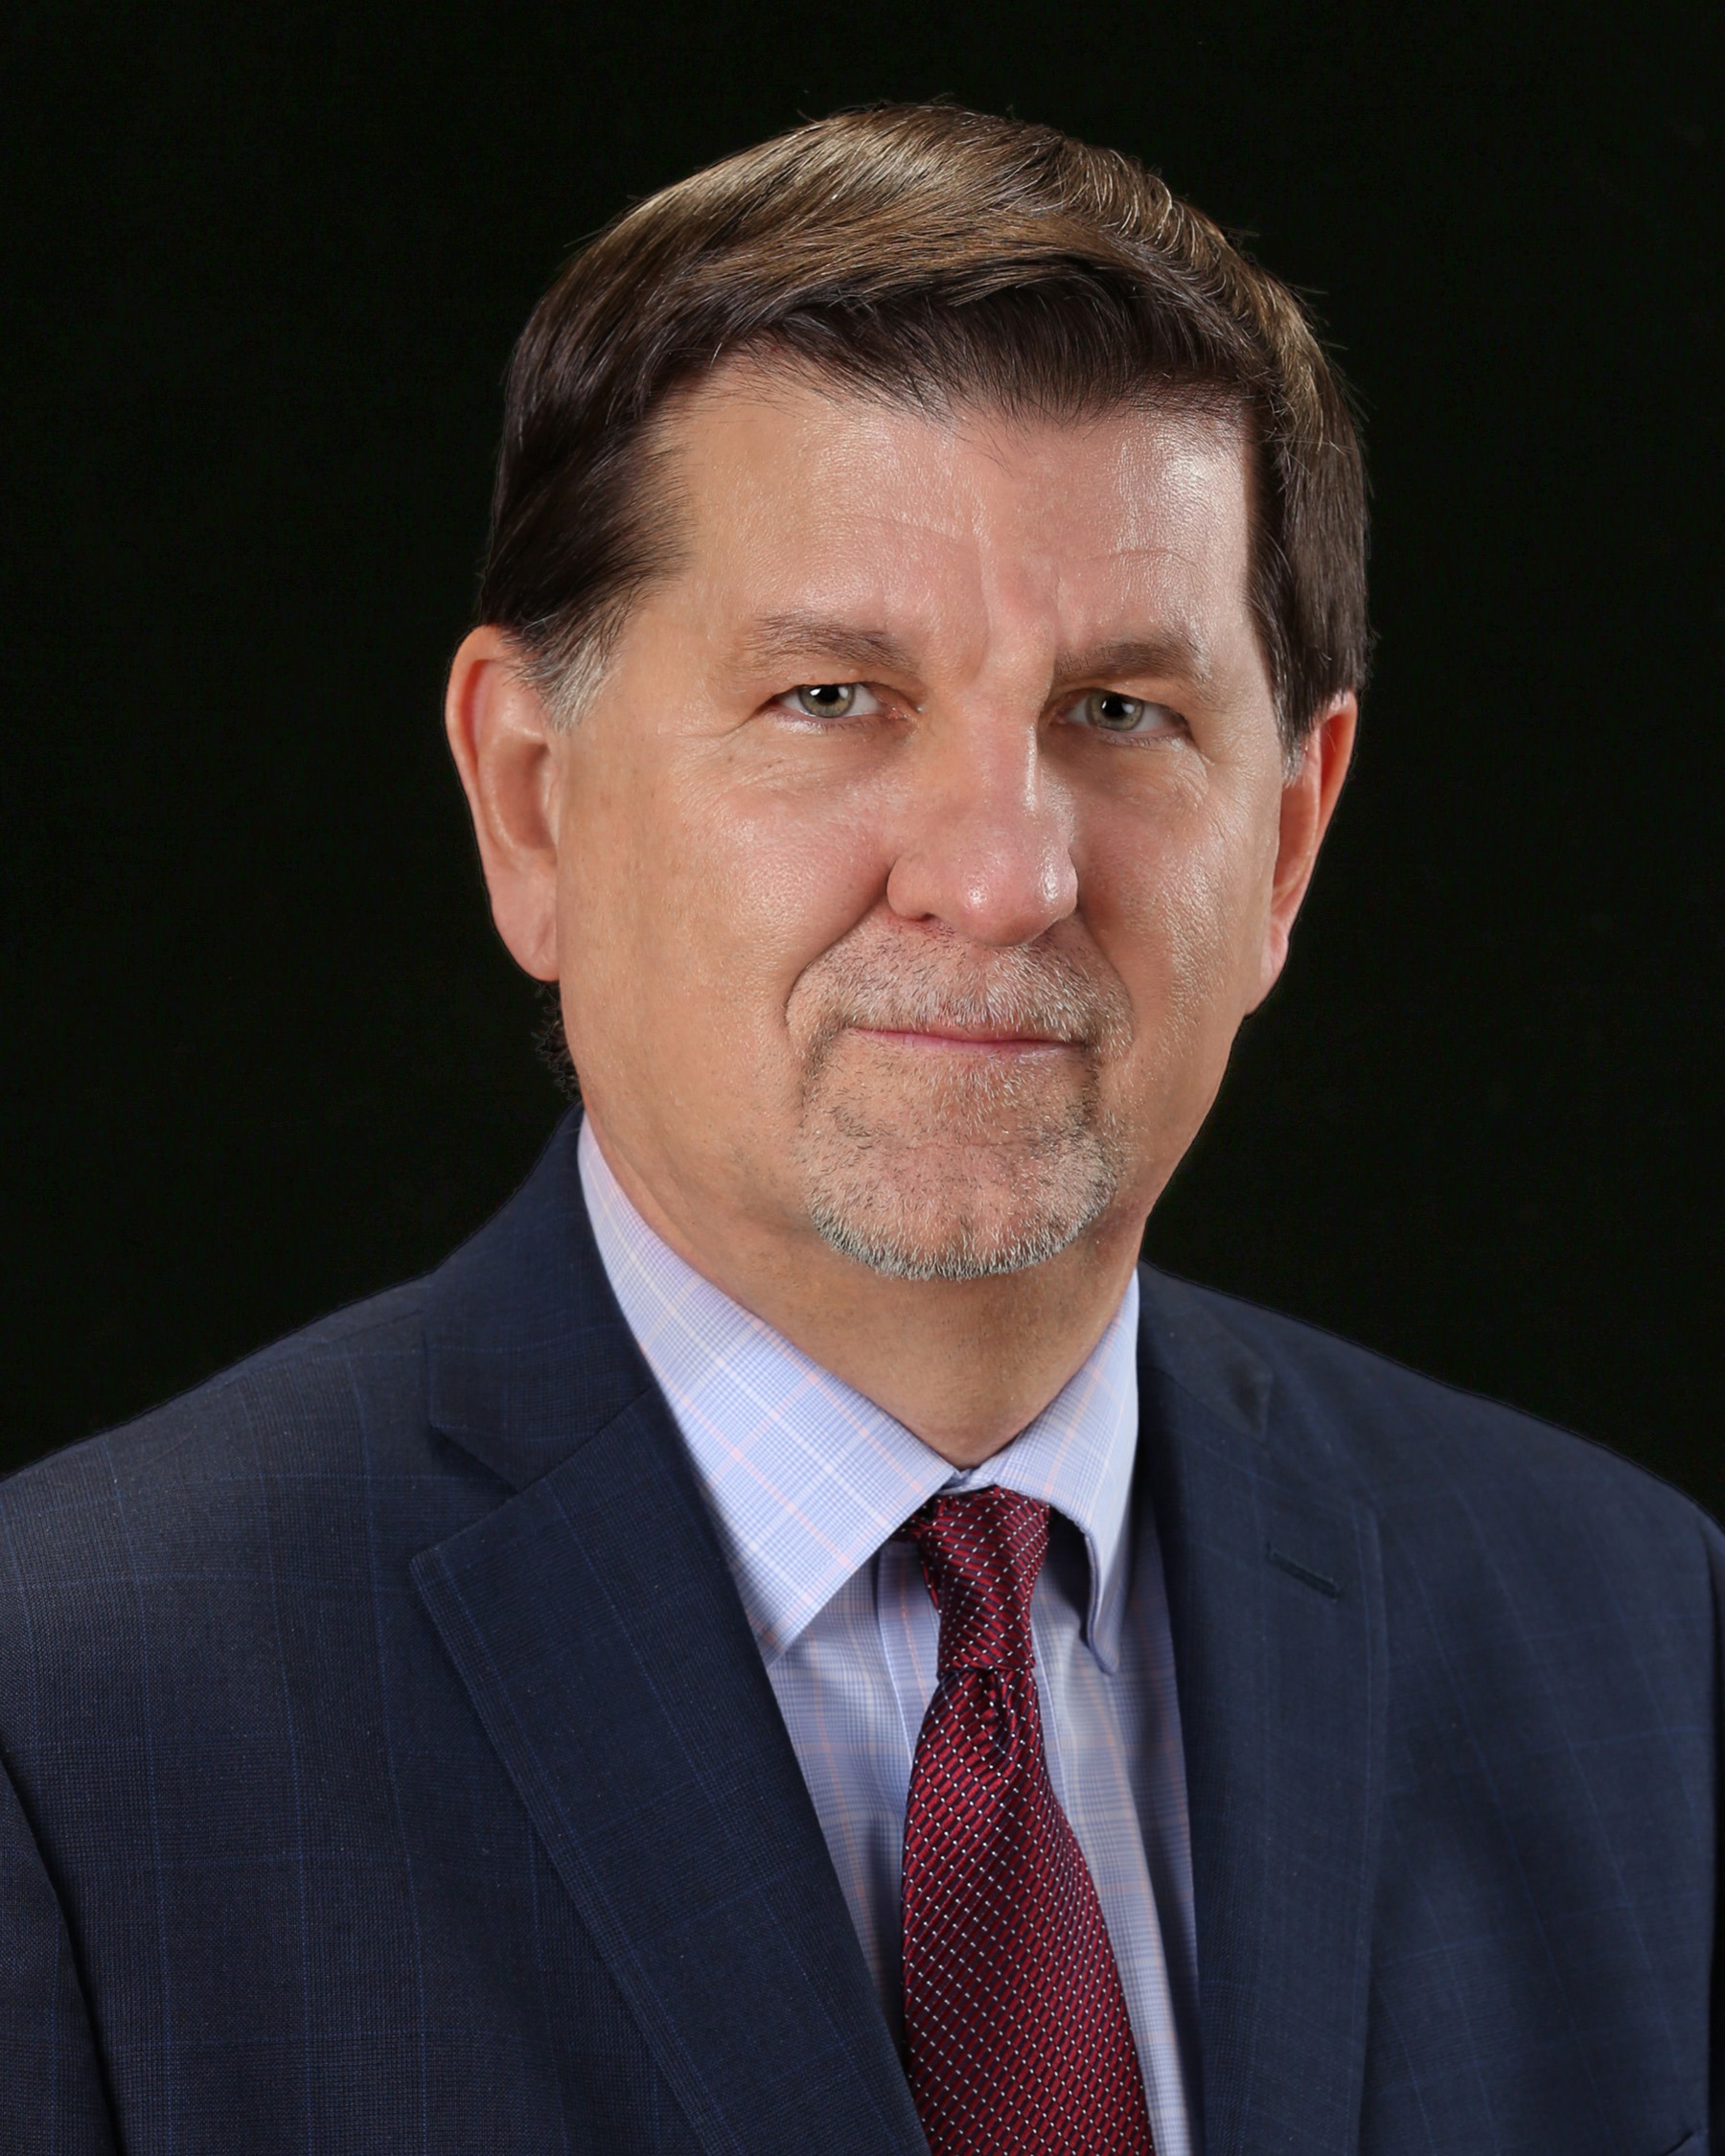 Kenneth A. Tarr, CPA